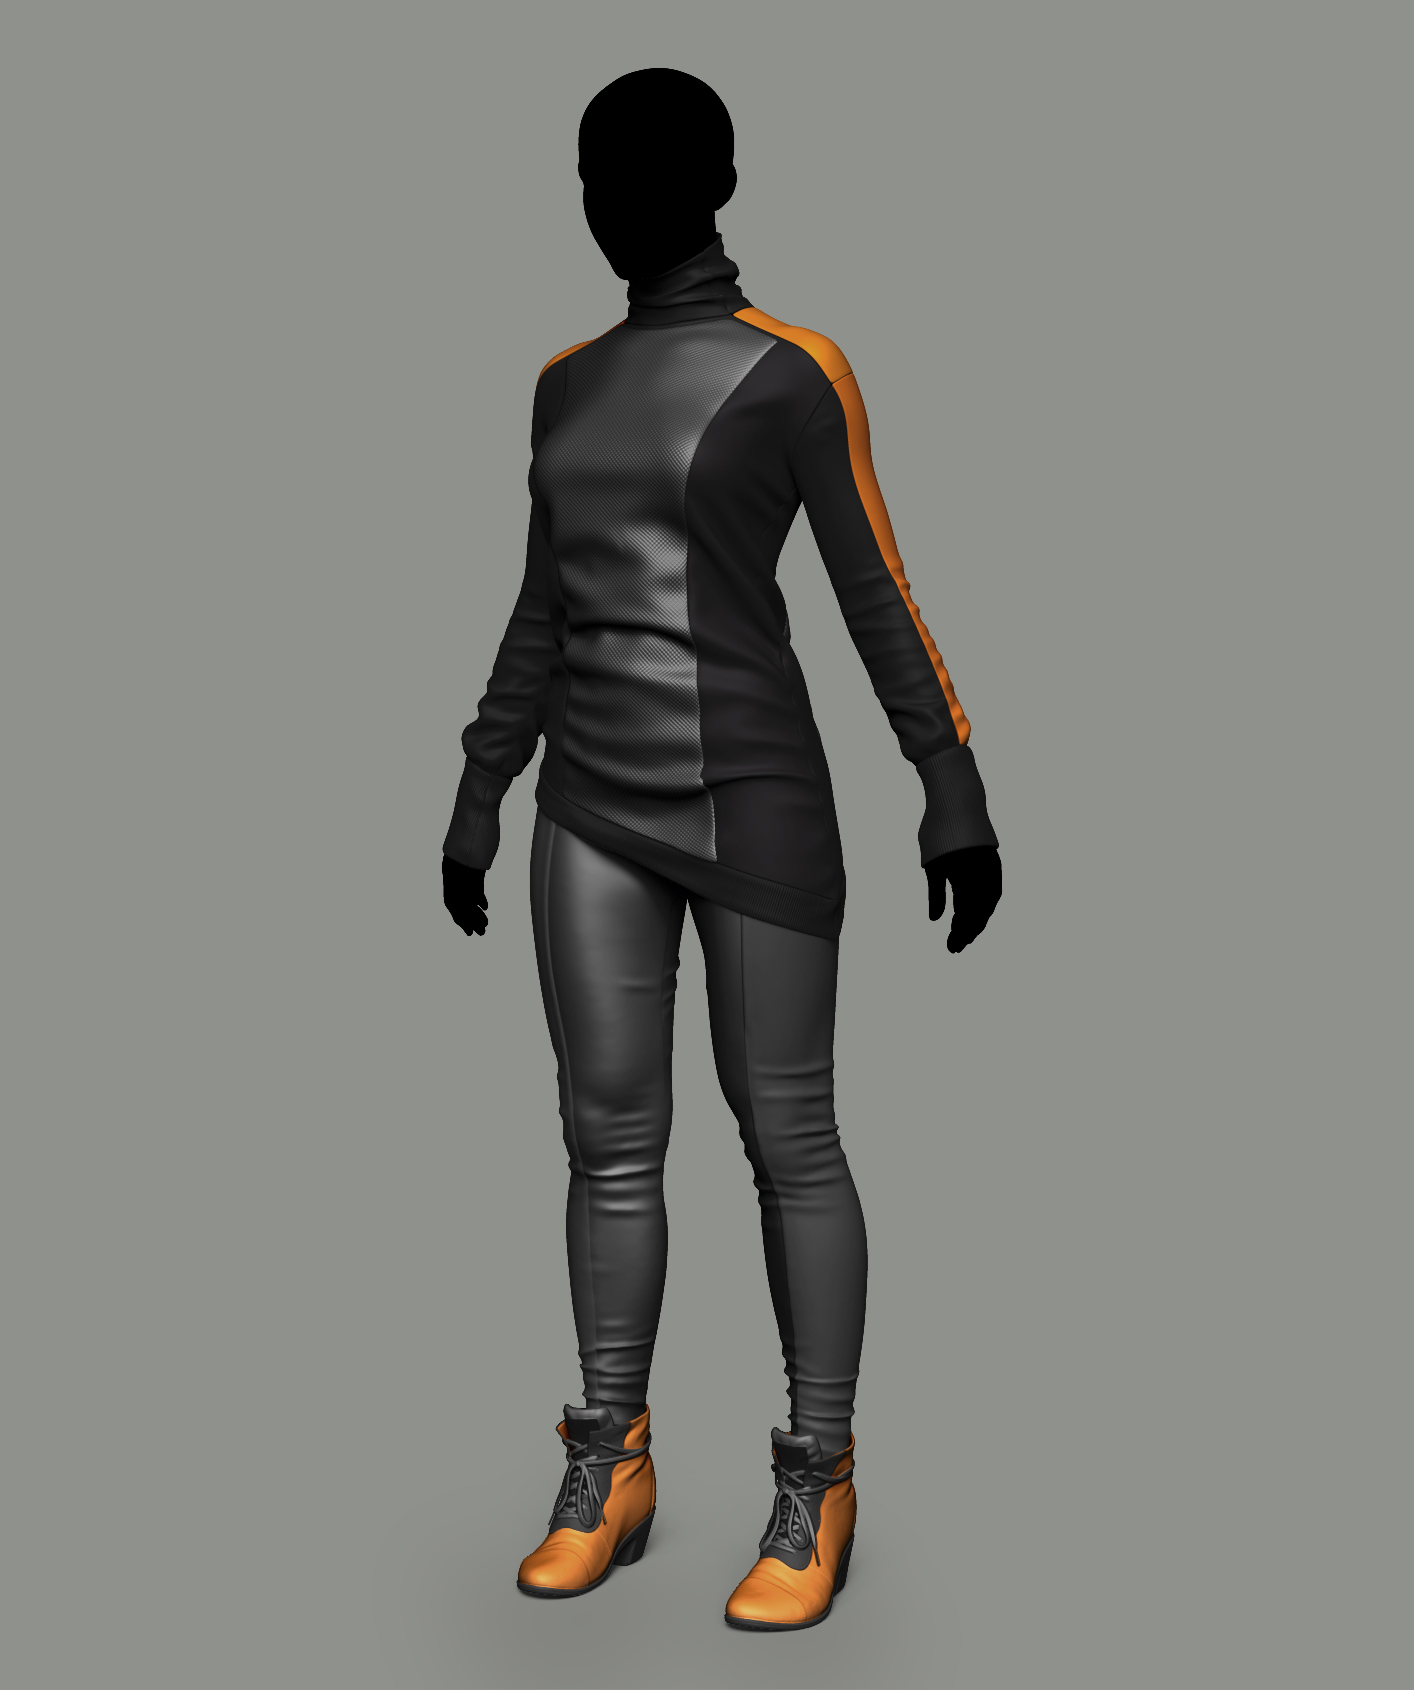 cyberpunk clothing practice — polycount